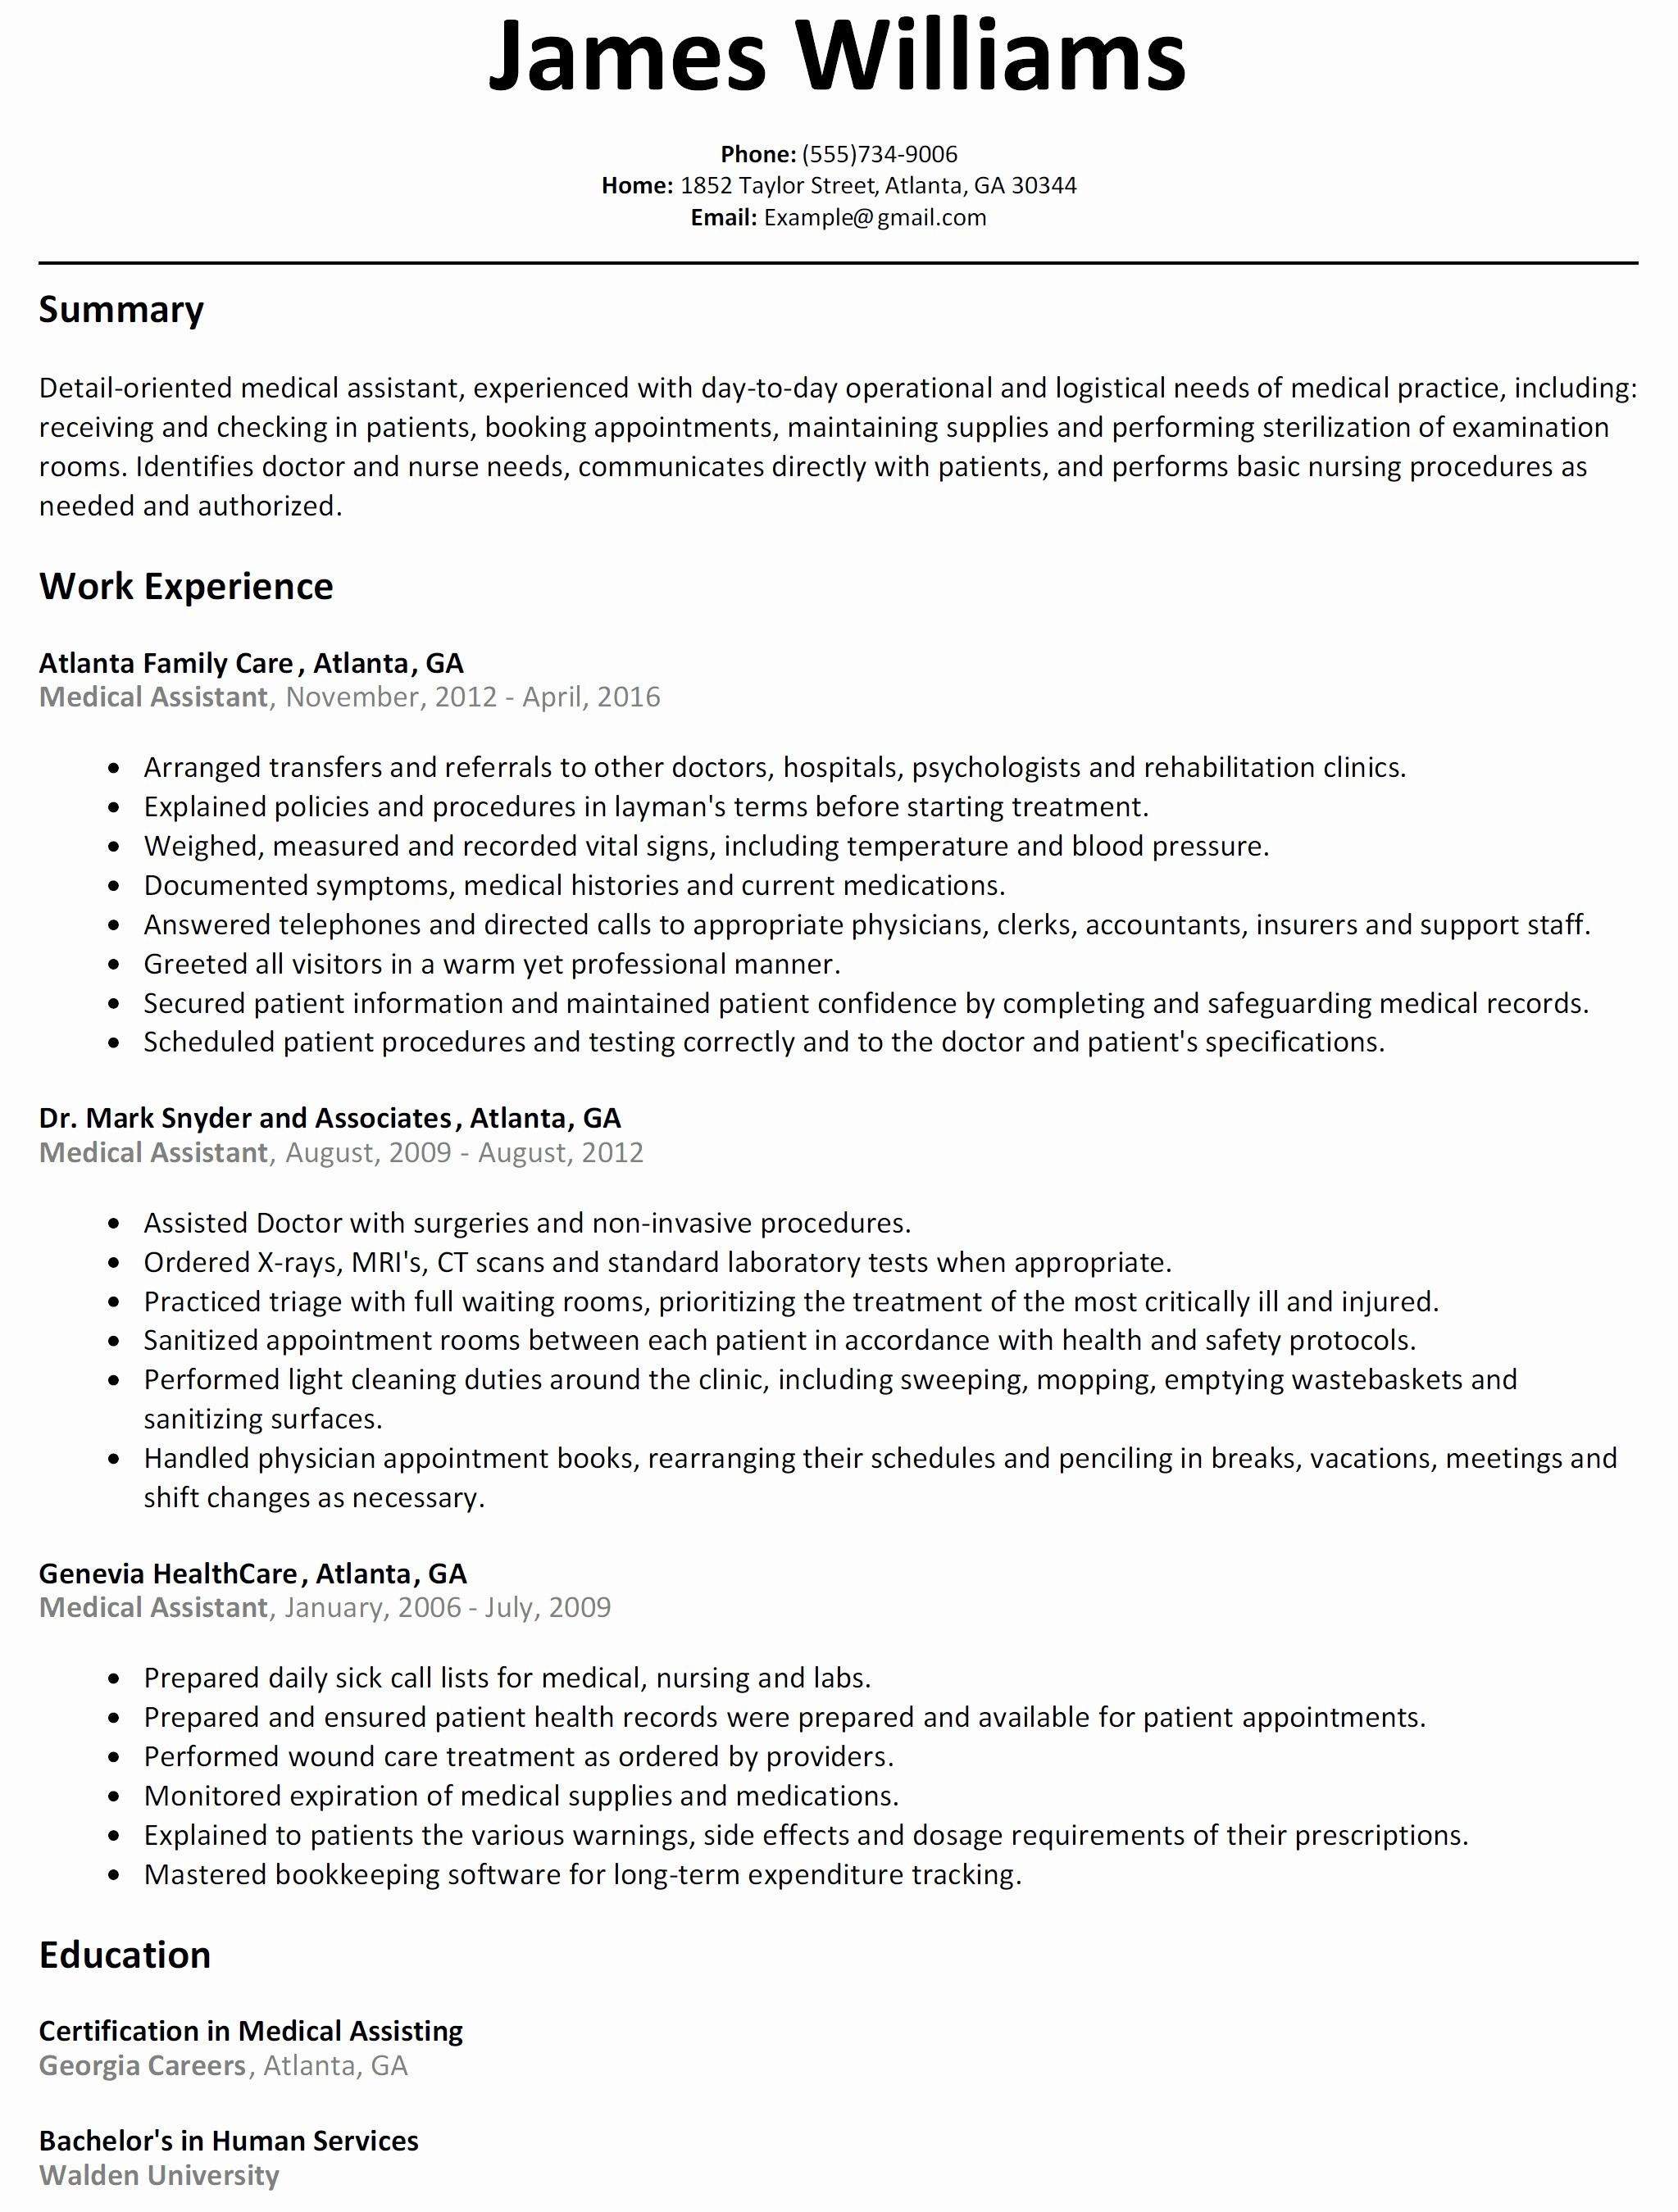 Resume Template Electrician - Journeyman Electrician Resume Inspirationa Apprentice Electrician